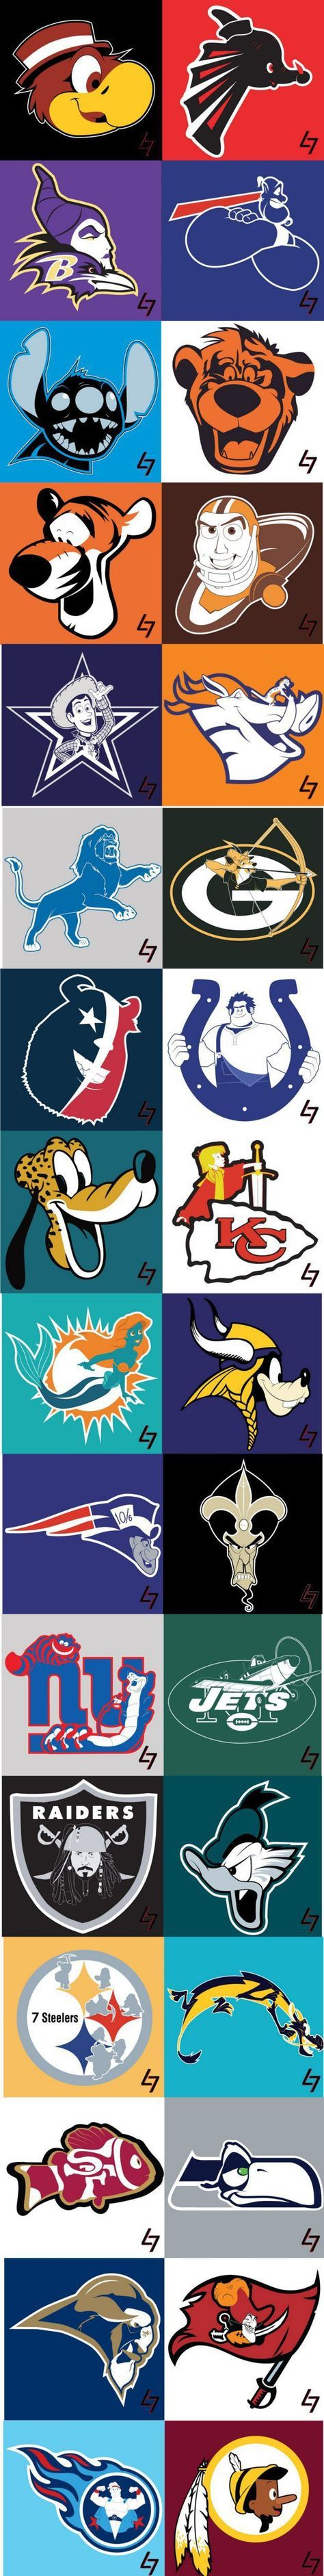 NFL logos with Disney characters